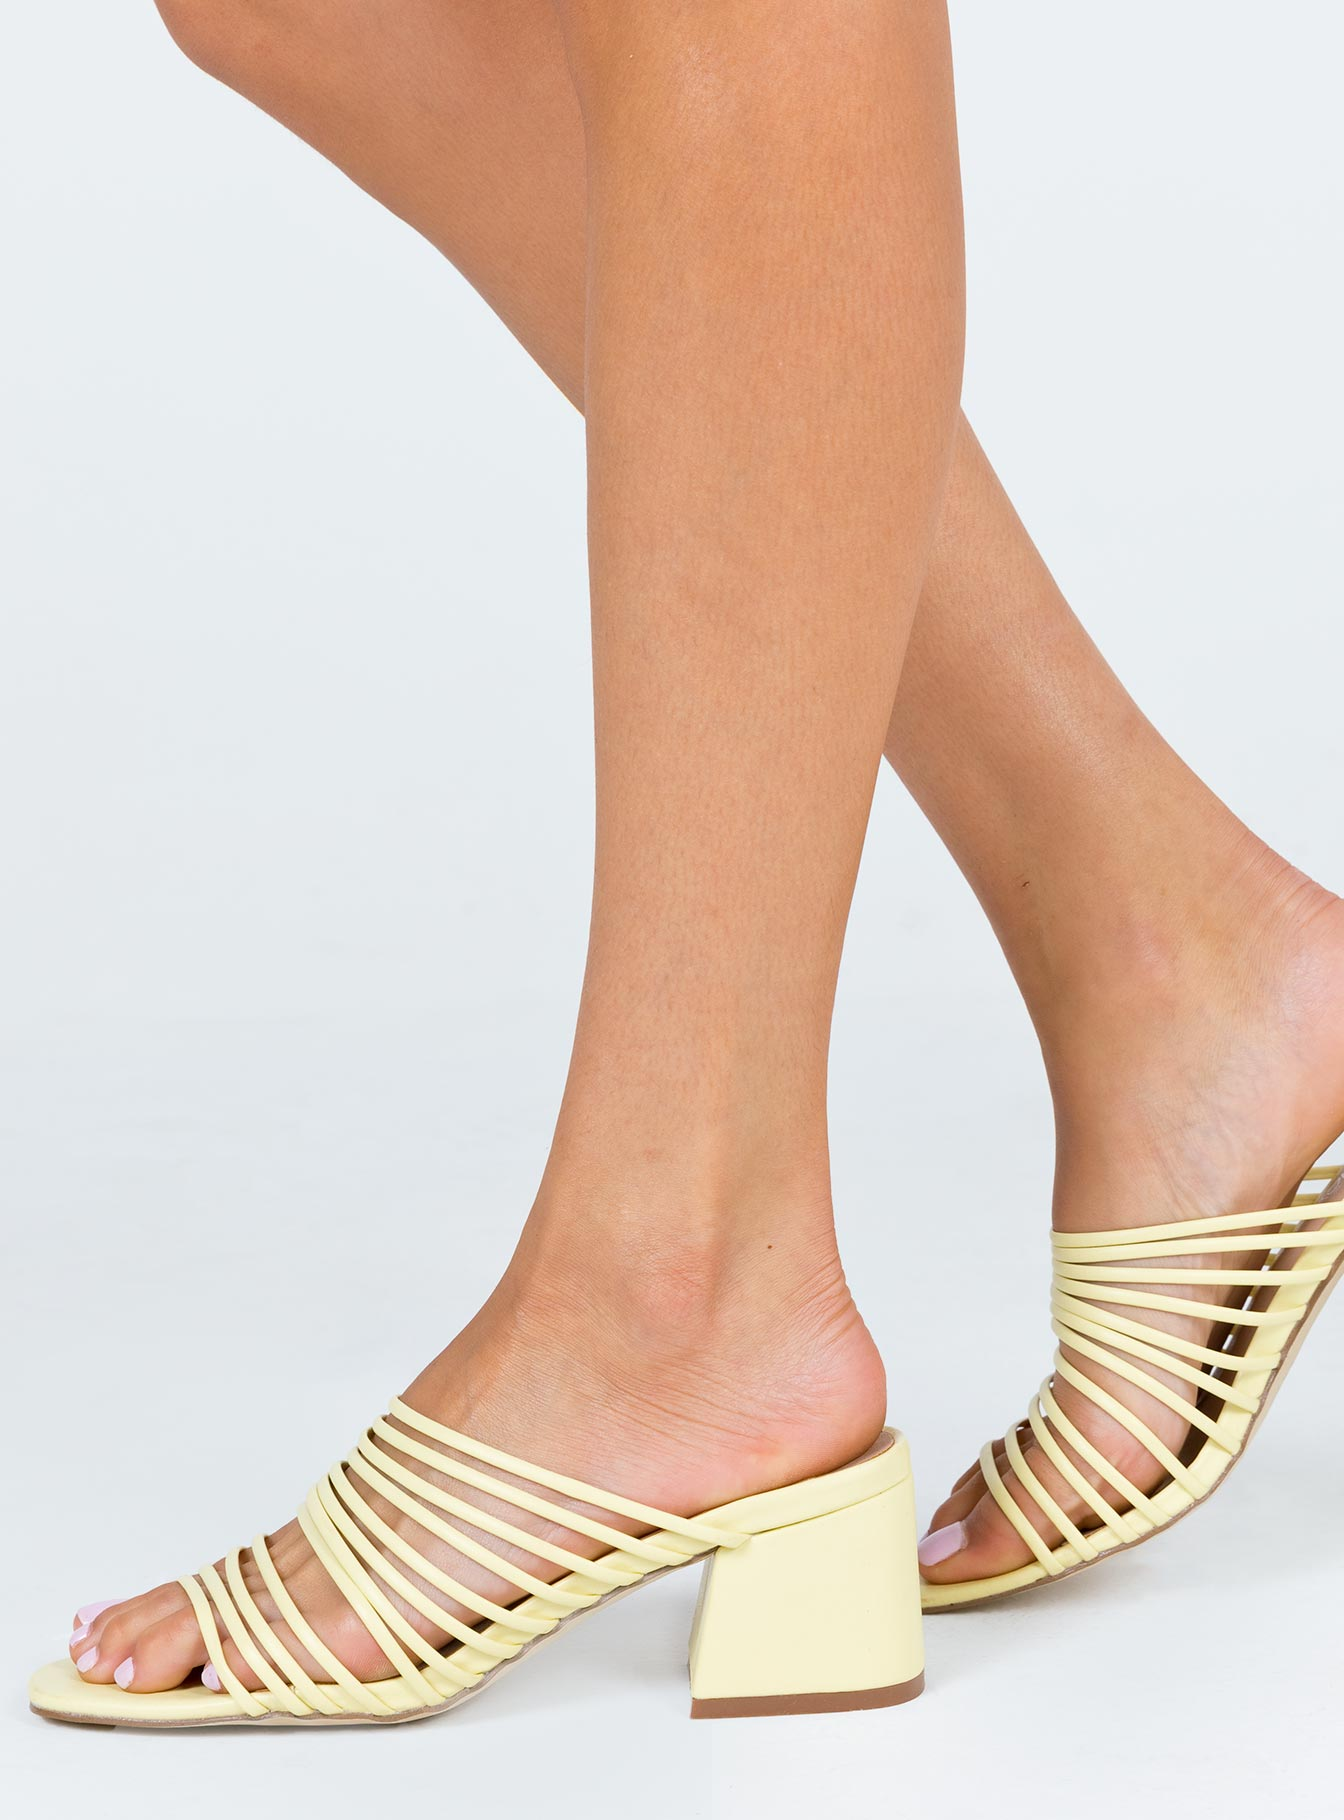 Therapy Lola Heels